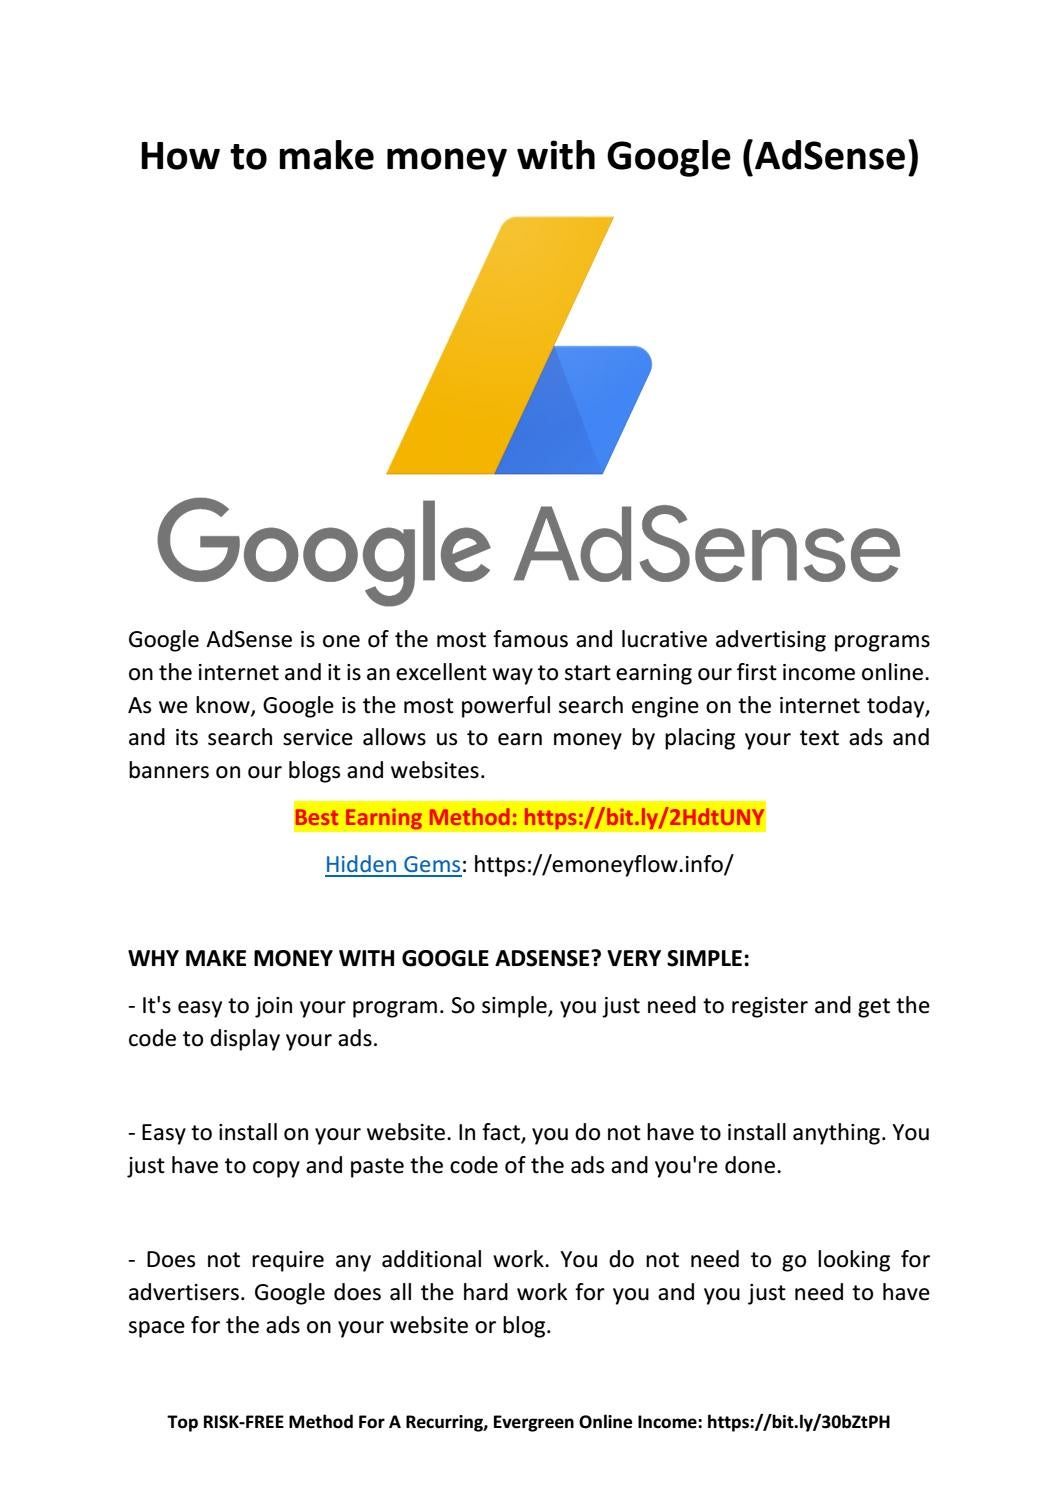 How to make money with Google by BarryBaskin   issuu